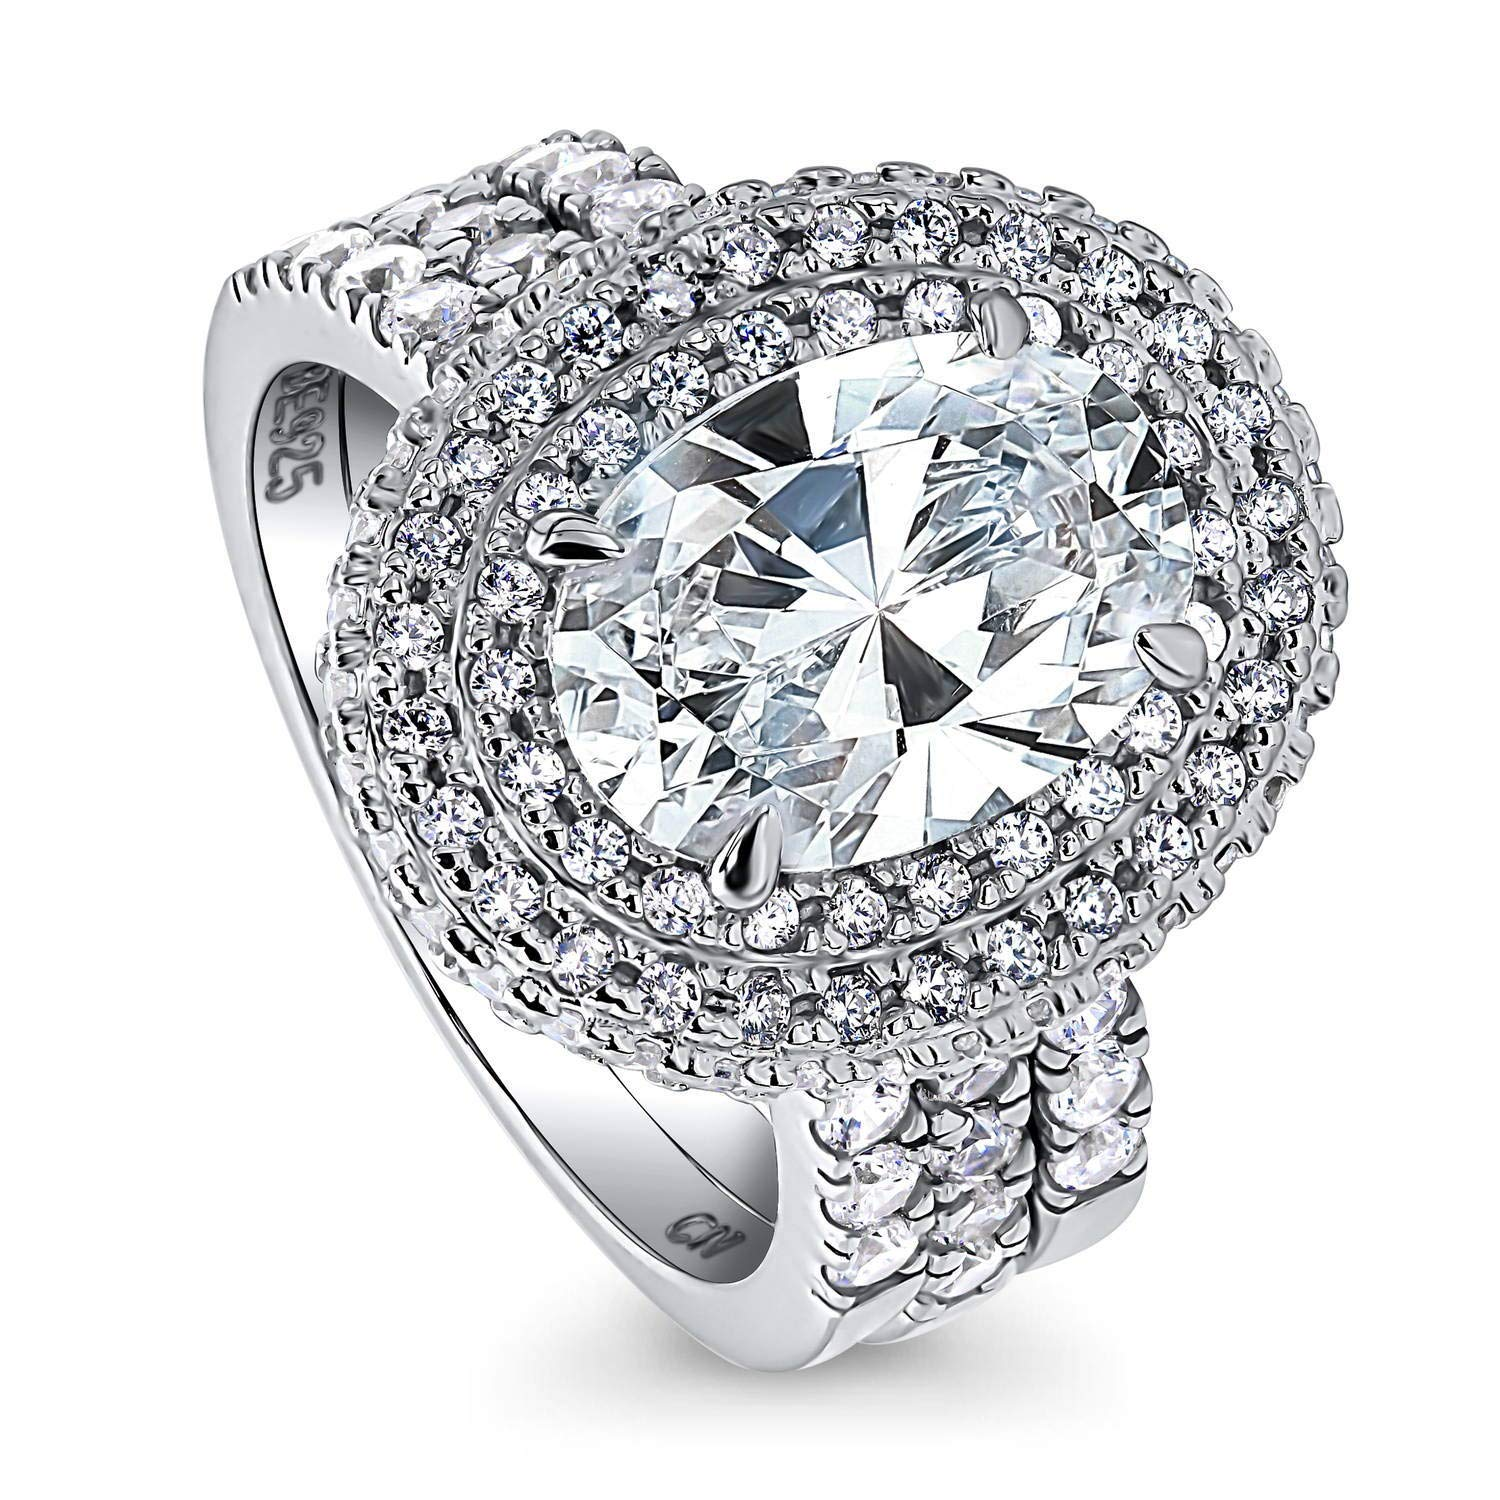 BERRICLE Rhodium Plated Sterling Silver Oval Cut Cubic Zirconia CZ Halo Engagement Wedding Ring Set 4.75 CTW Size 6 by BERRICLE